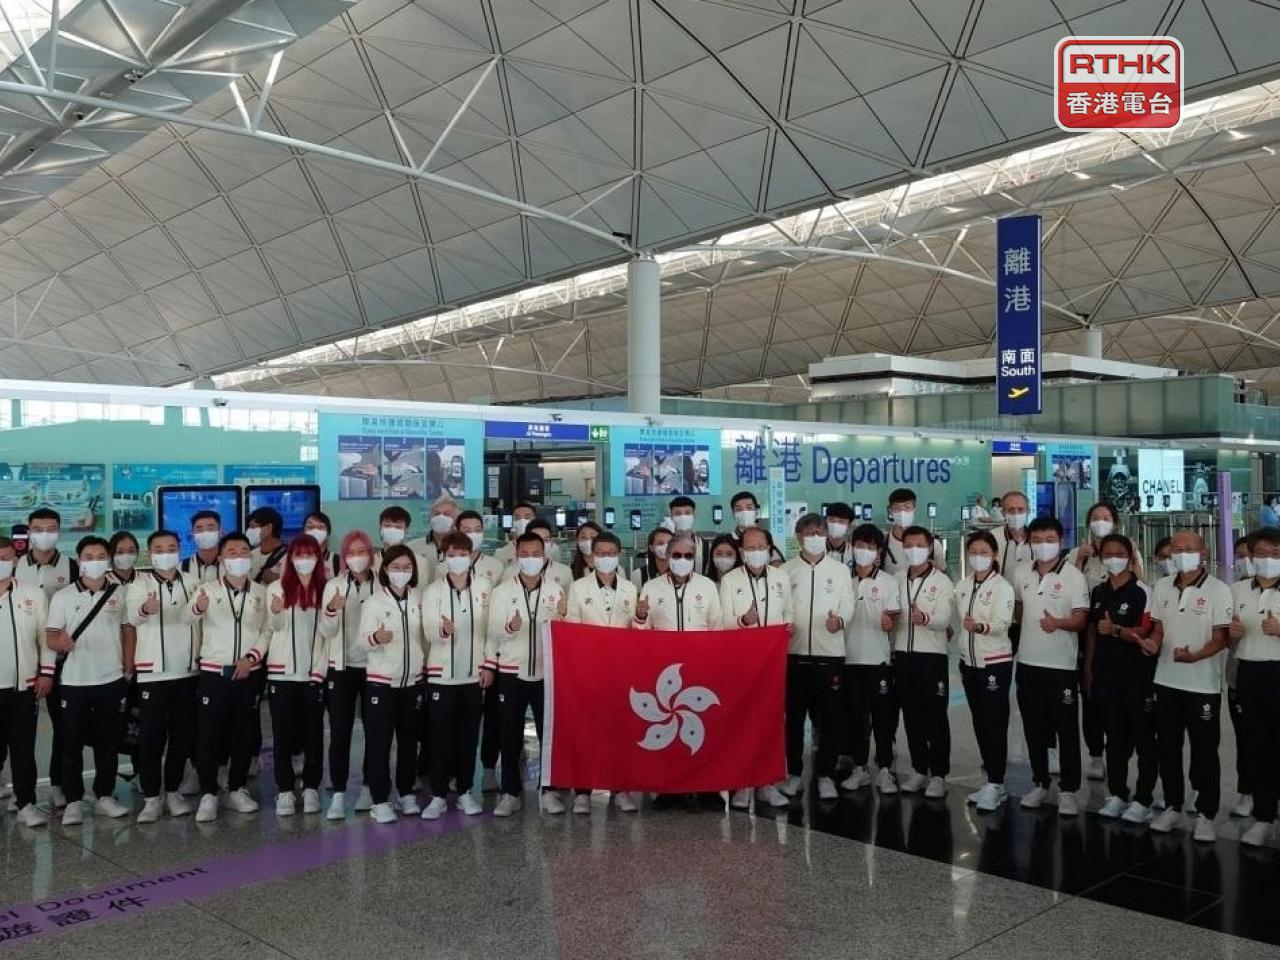 The planned celebration comes after the city recorded its best-ever Olympics performance with a historic total of six medals. File photo: RTHK